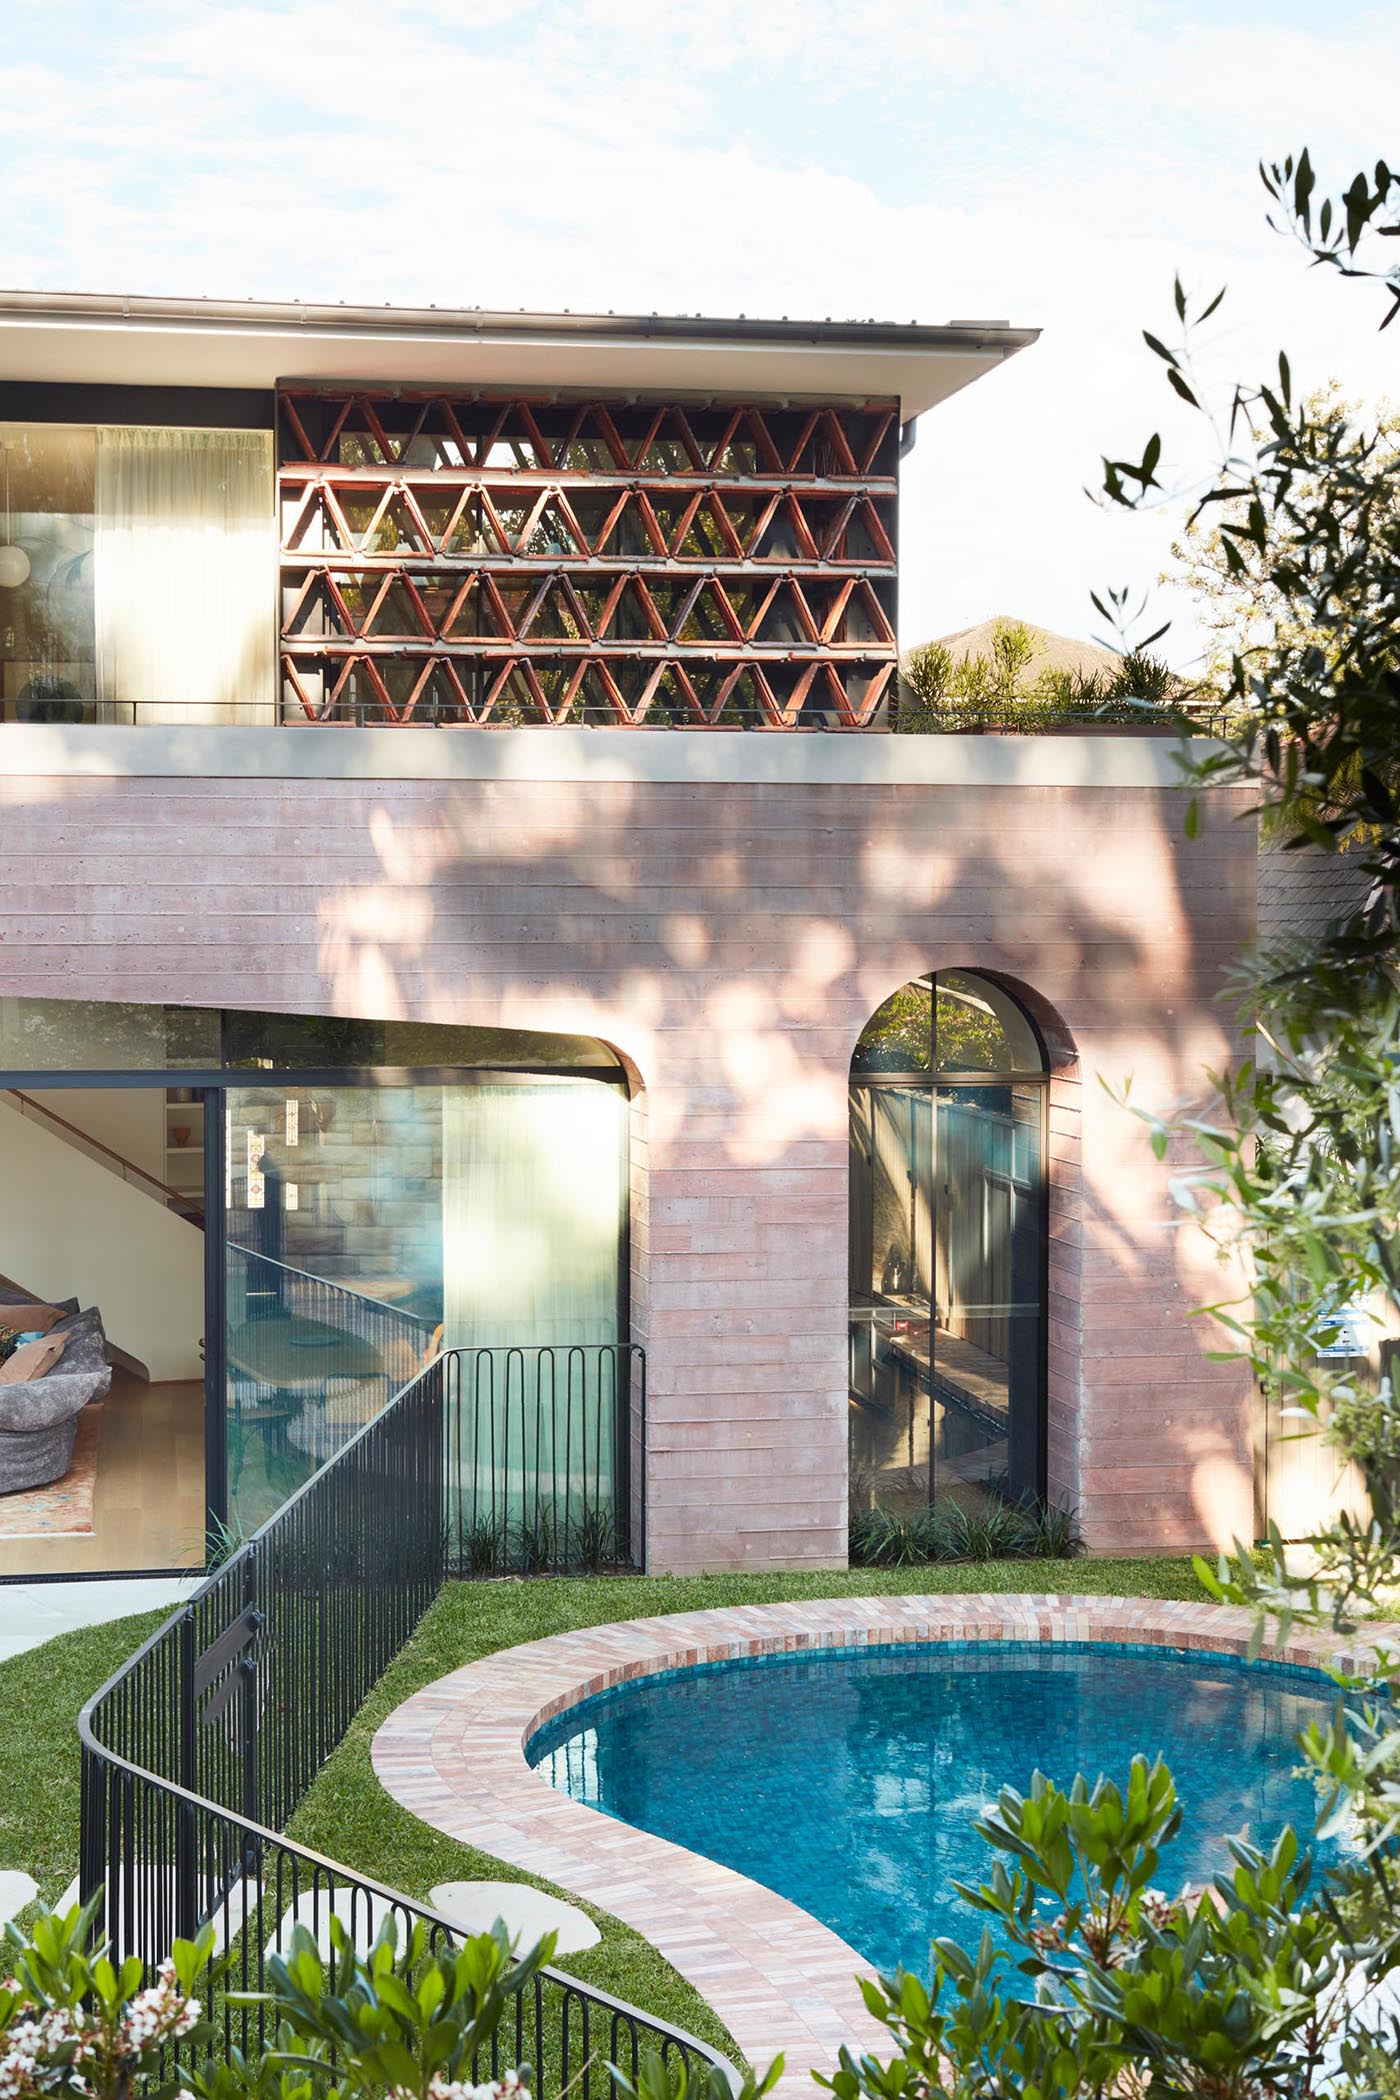 A modern home extension made from pink concrete.